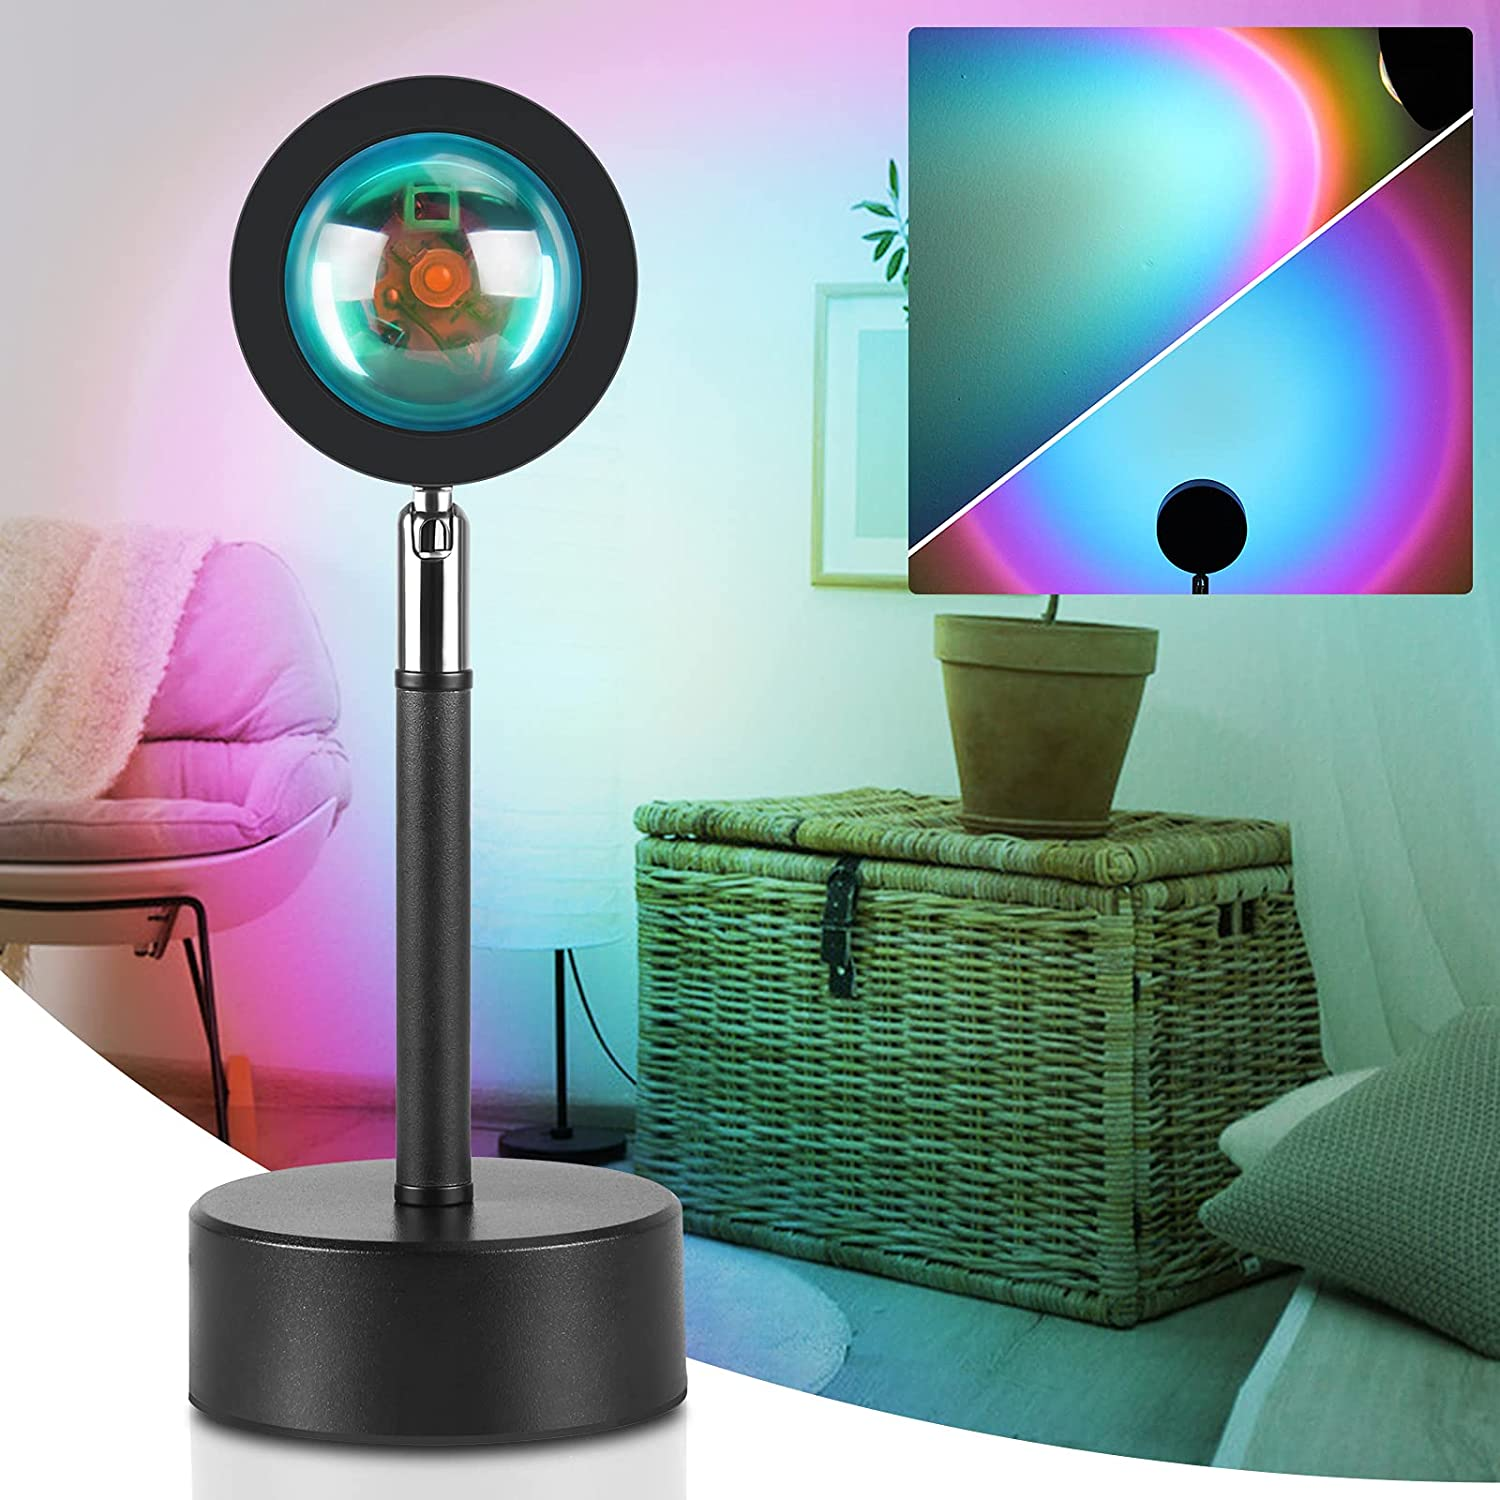 Sunset Lamp, GooDGo Night Light Projector Led Lamp, 180 Degree Rotation Sunset Night Light,USB Charging Romantic Led Light Rainbow Projection Lamp for Home Party Living Room Bedroom Decor (Colorful)